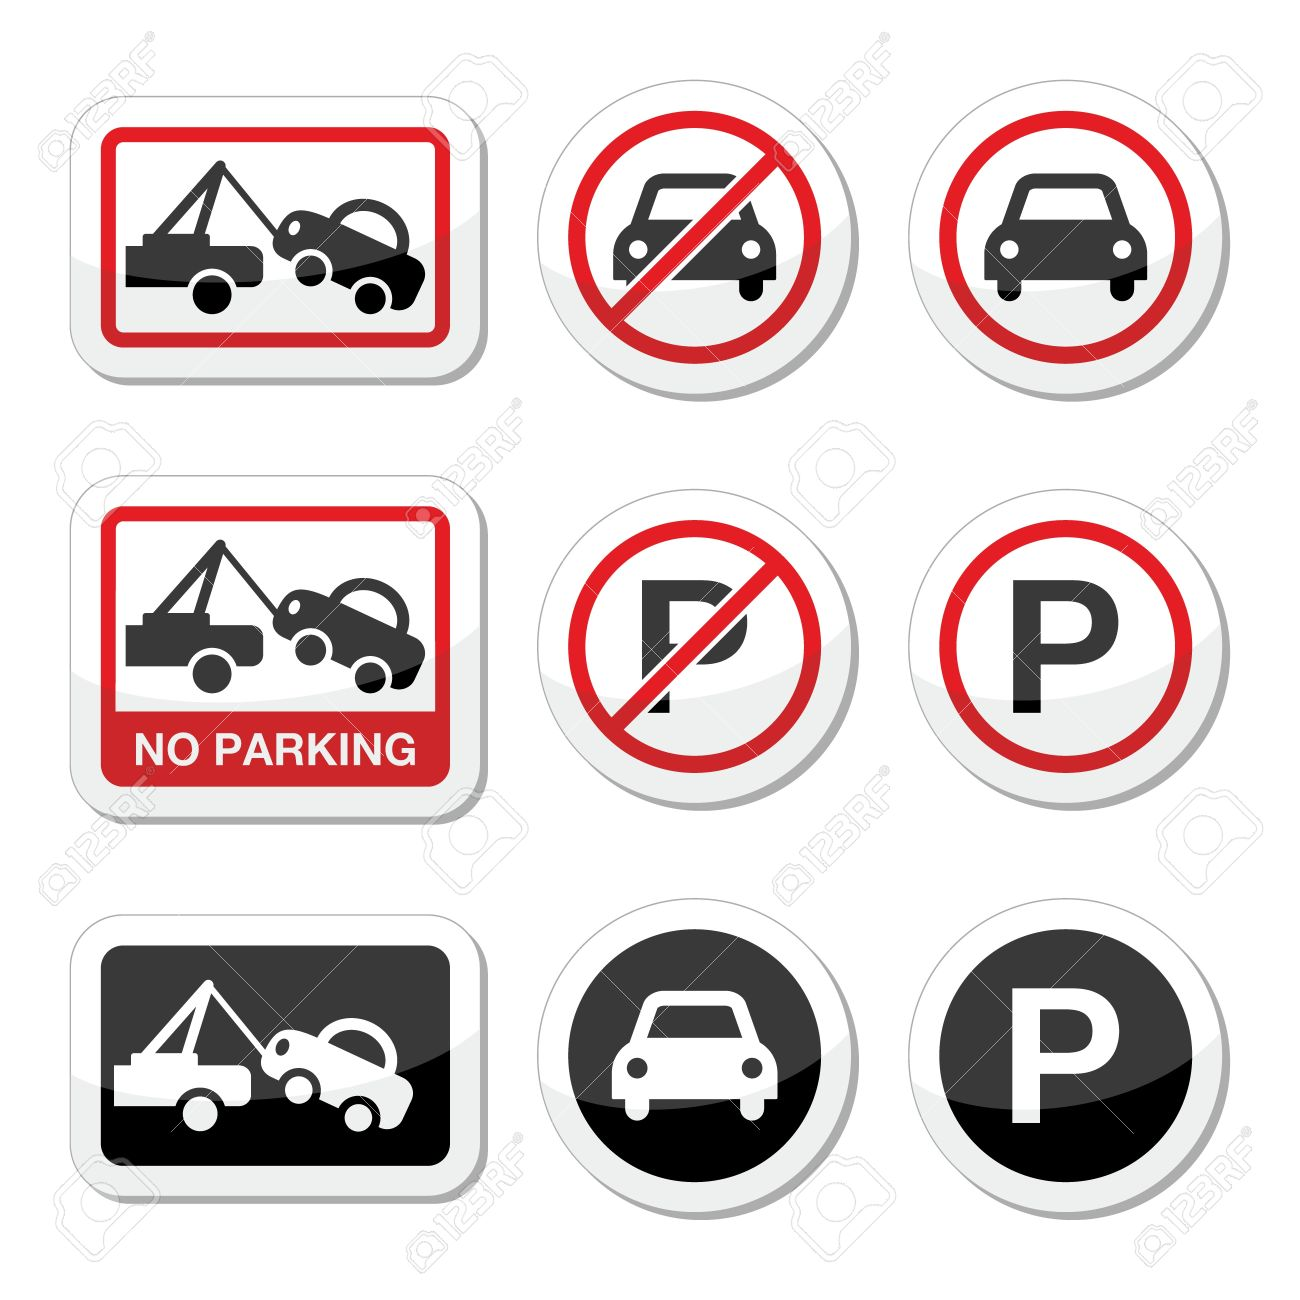 No parking, parking forbidden red and black sign Stock Vector - 21773238